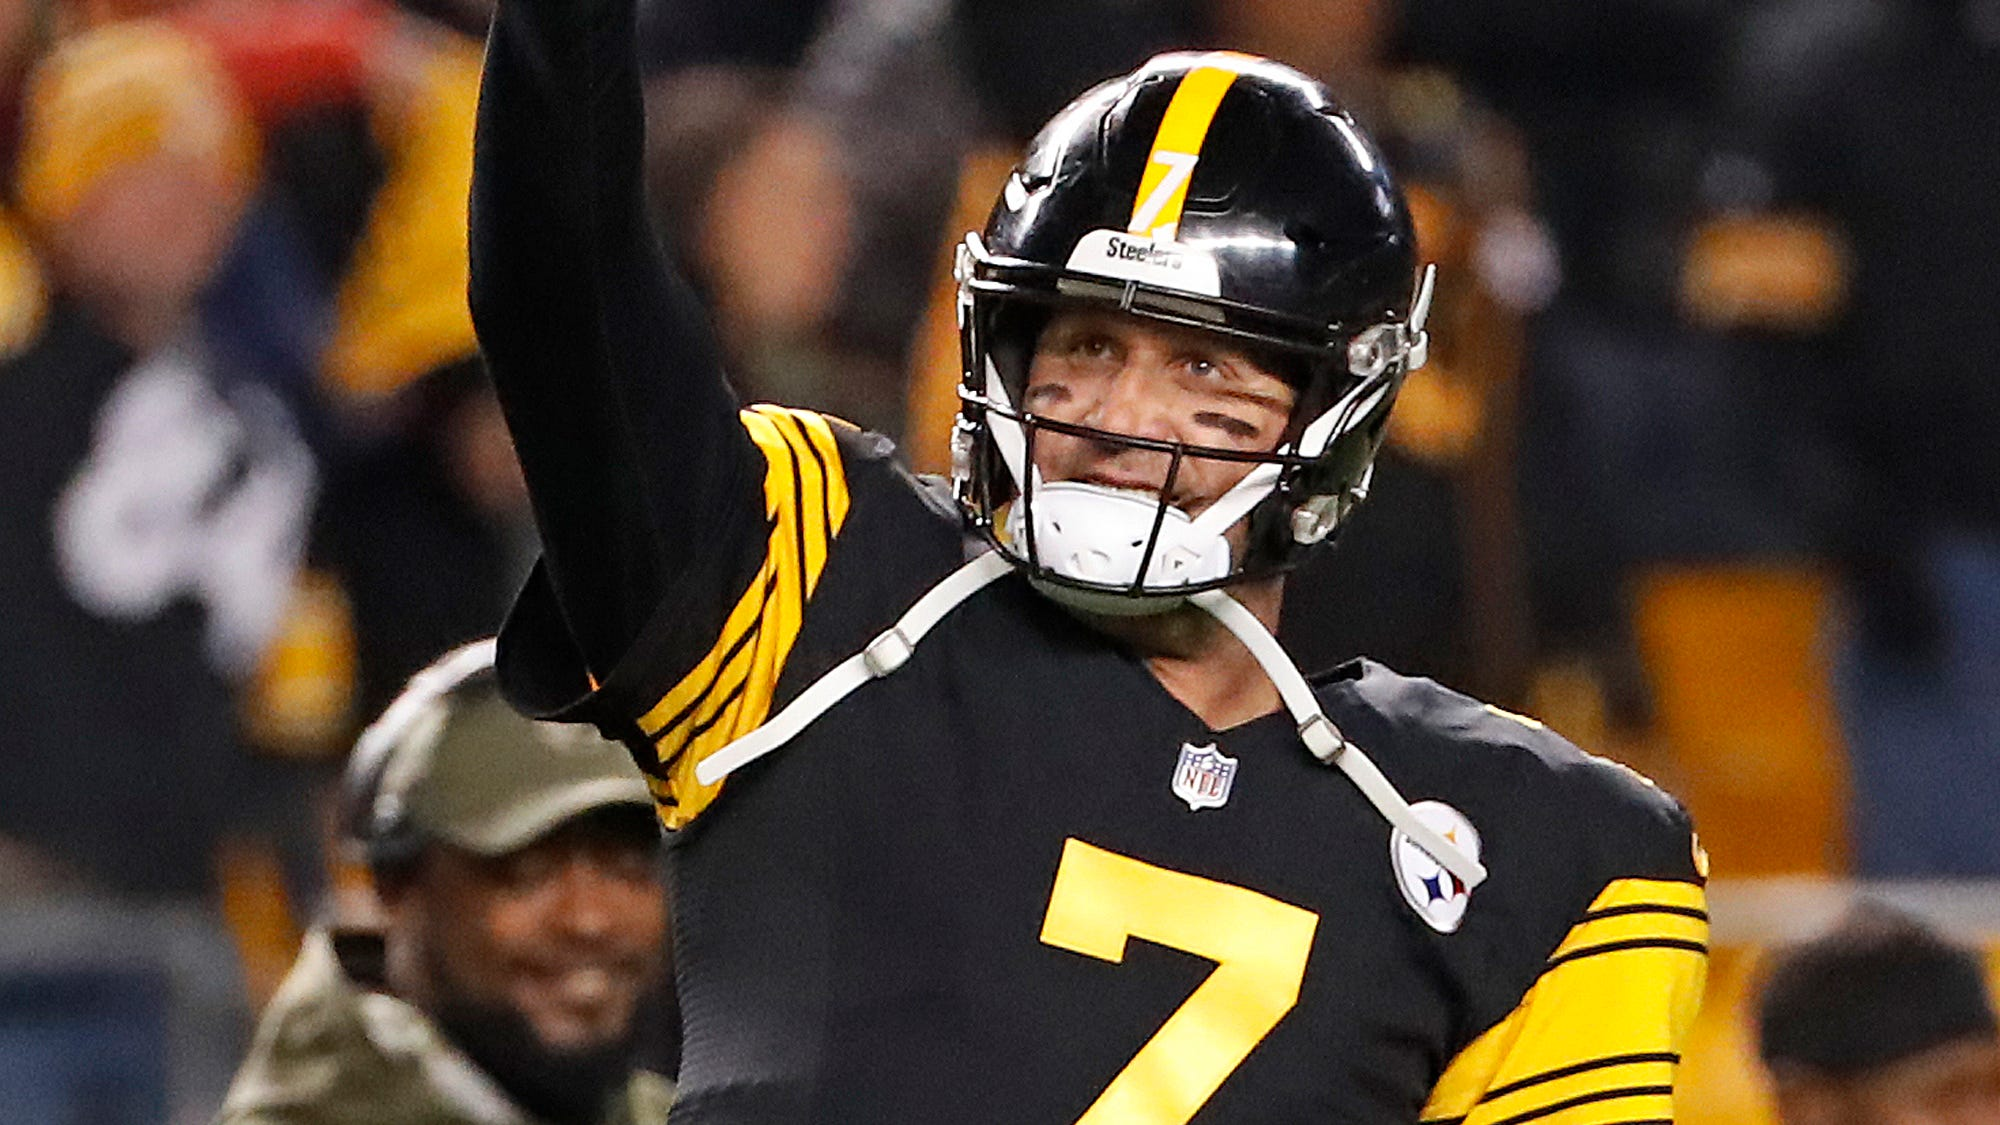 Steelers rout Panthers, Ben Roethlisberger has 5 TDs ahead of Le'Veon Bell's likely return thumbnail